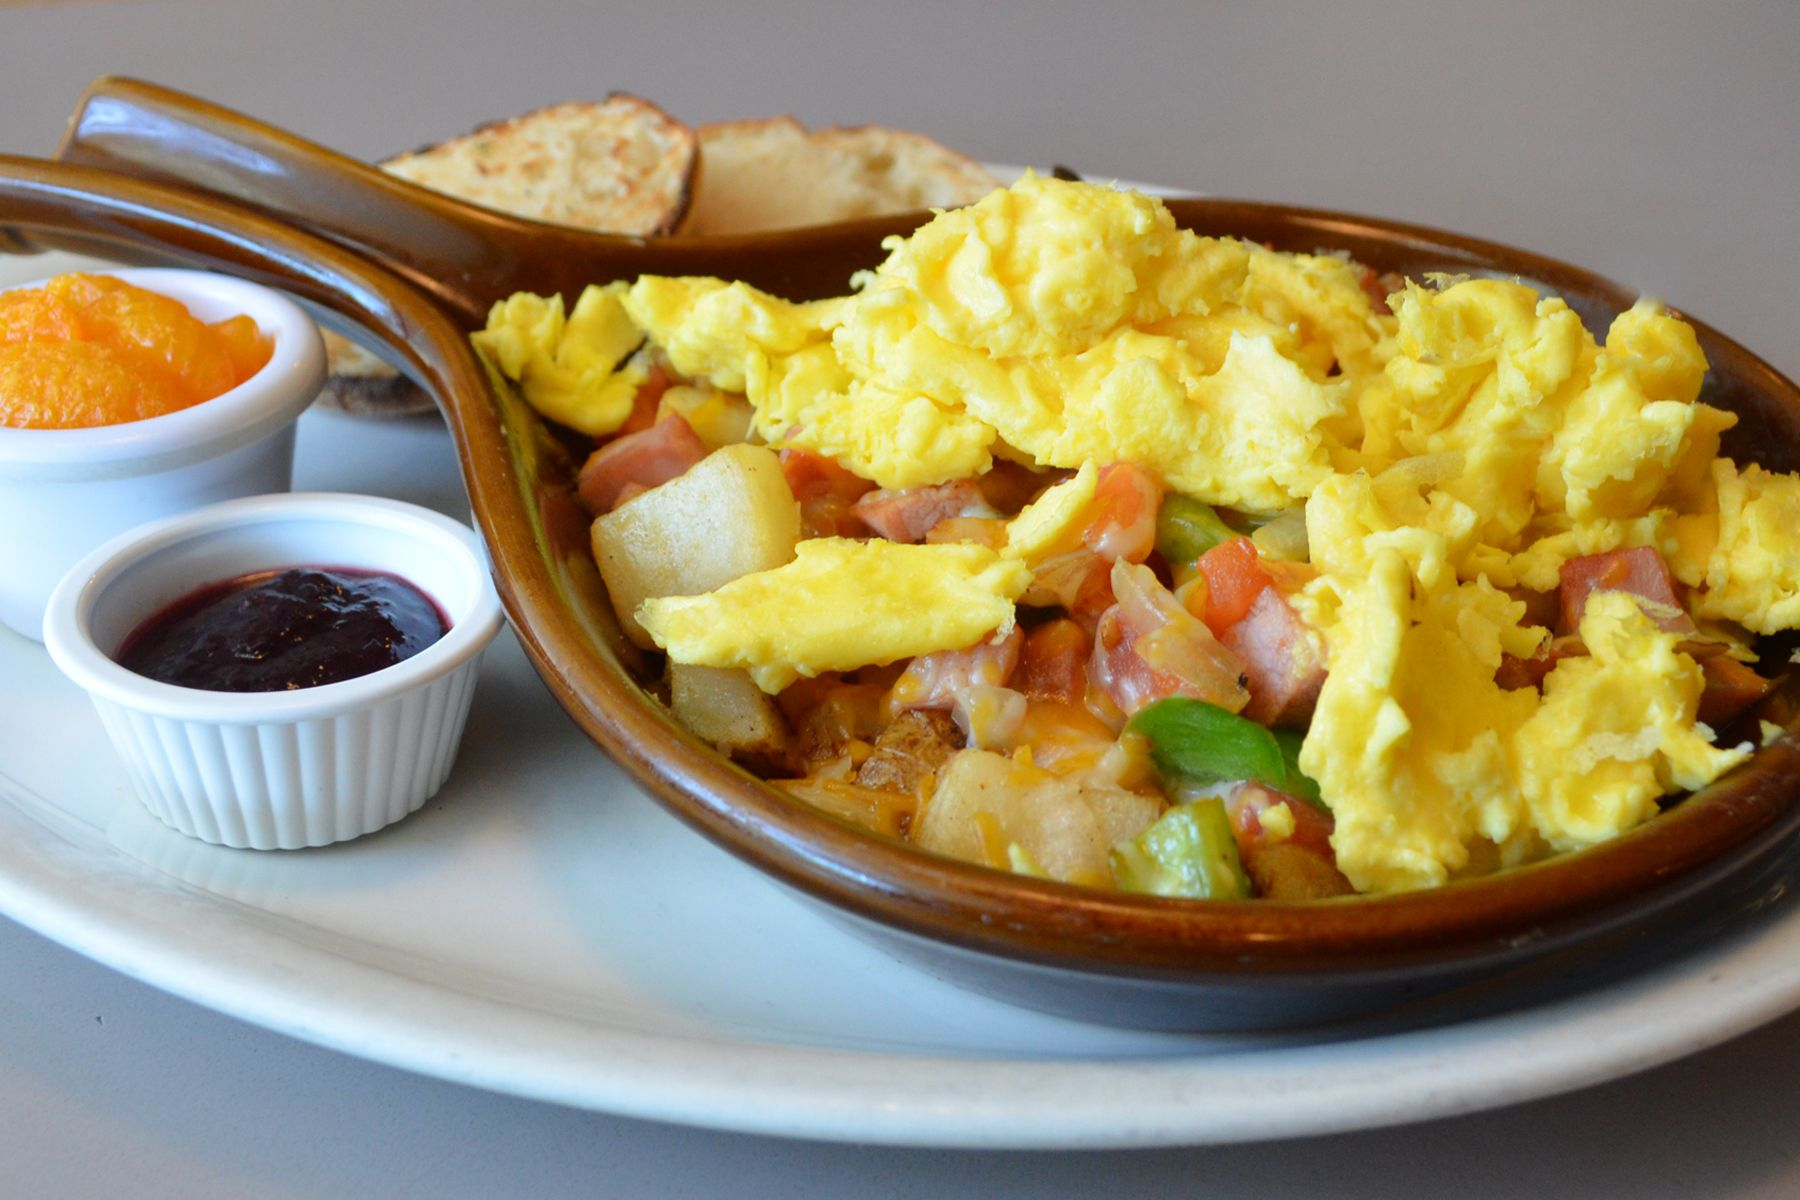 Menu at Egg Harbor Cafe offers Delicious Breakfast and